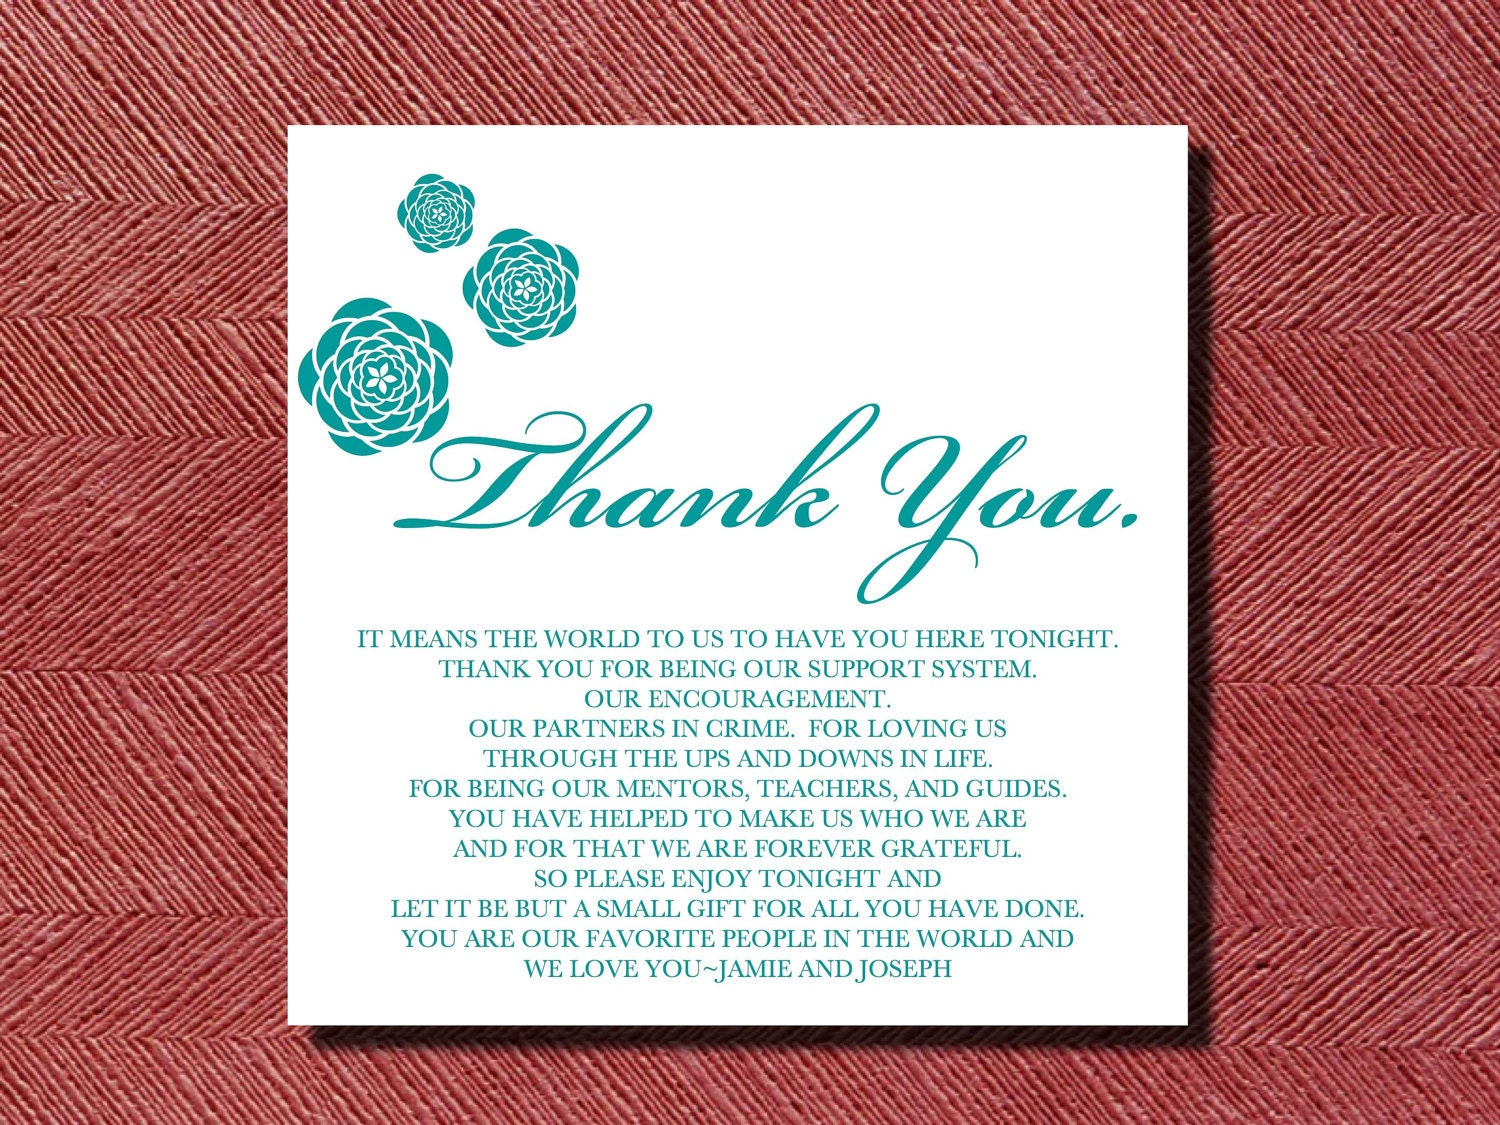 Thank You Card Verbiage Wedding. Wedding Thank You Card Wording ...